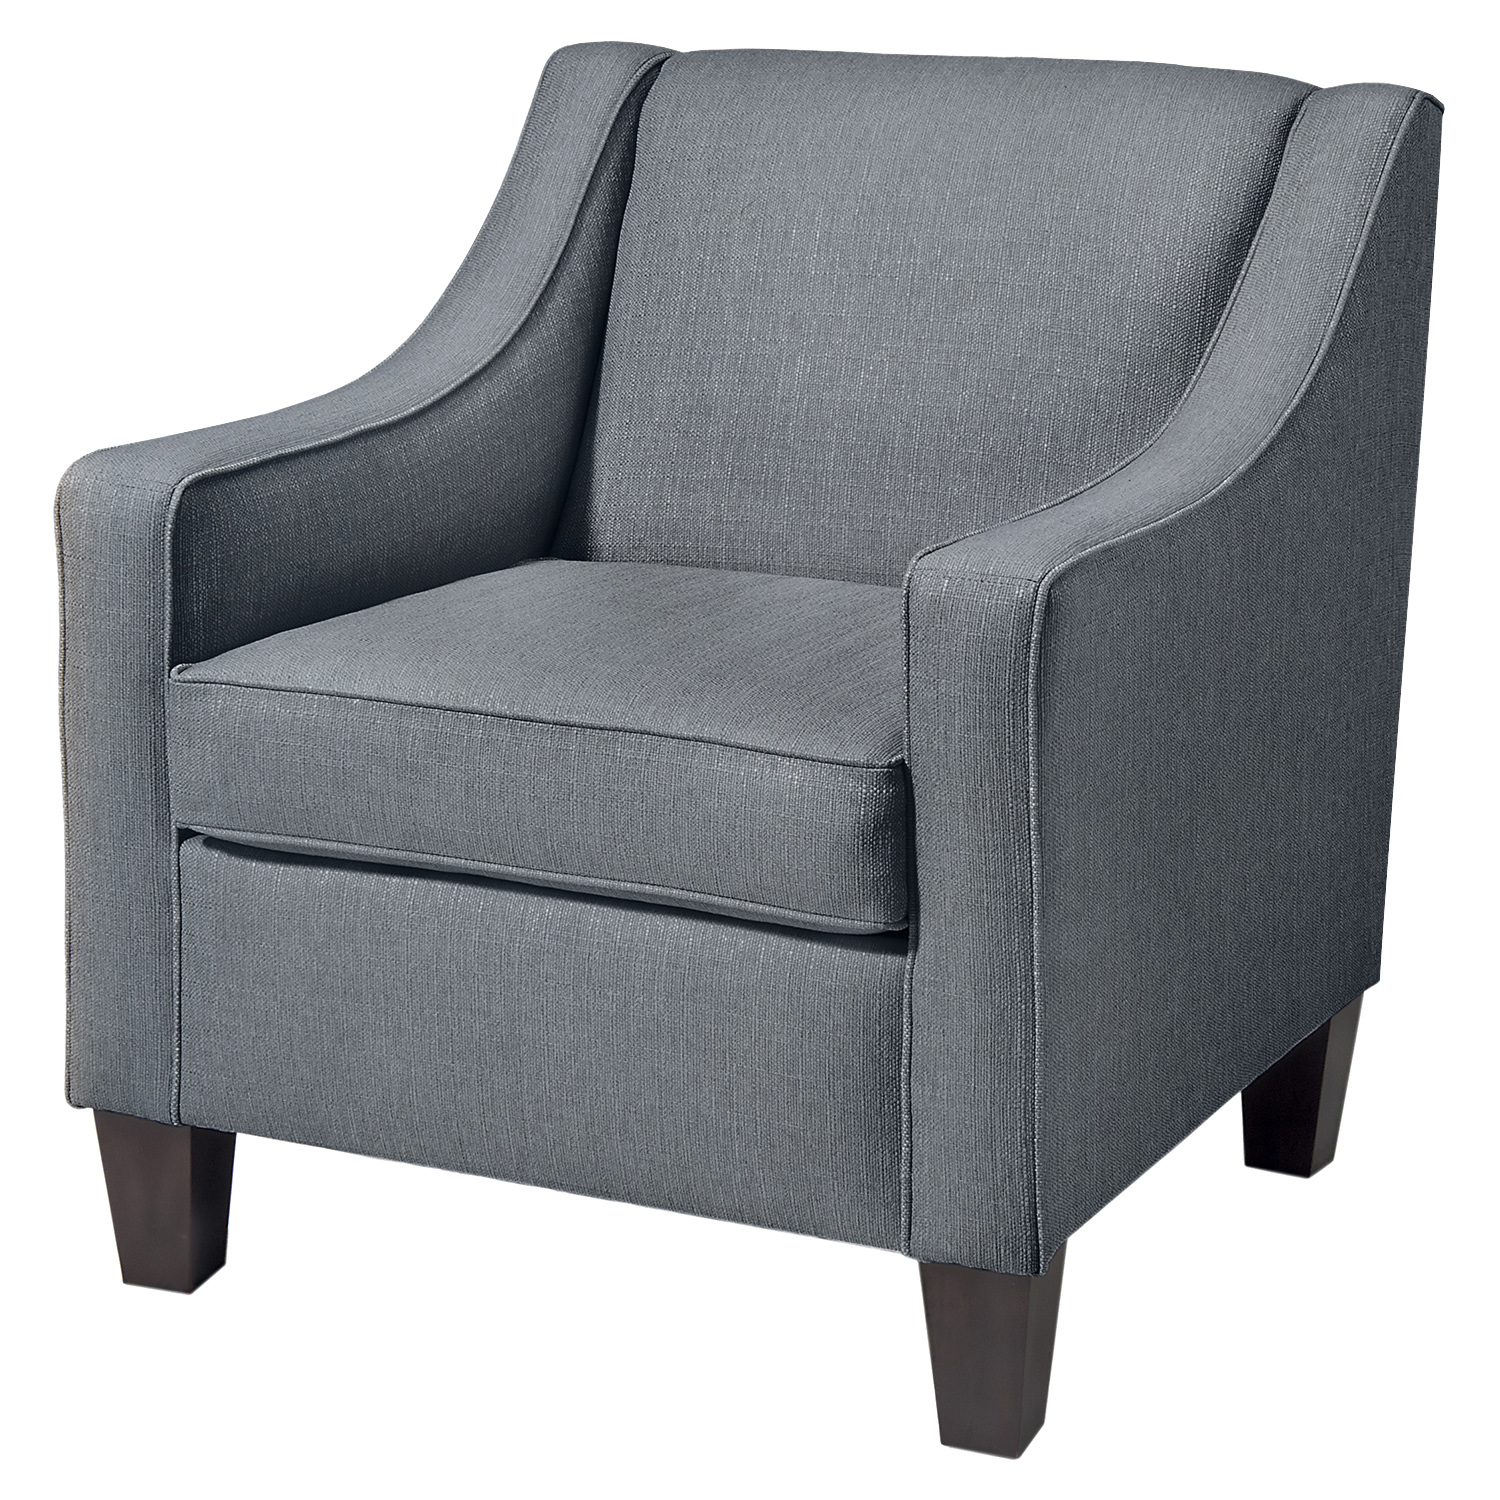 Ellery Club Chair - Charcoal